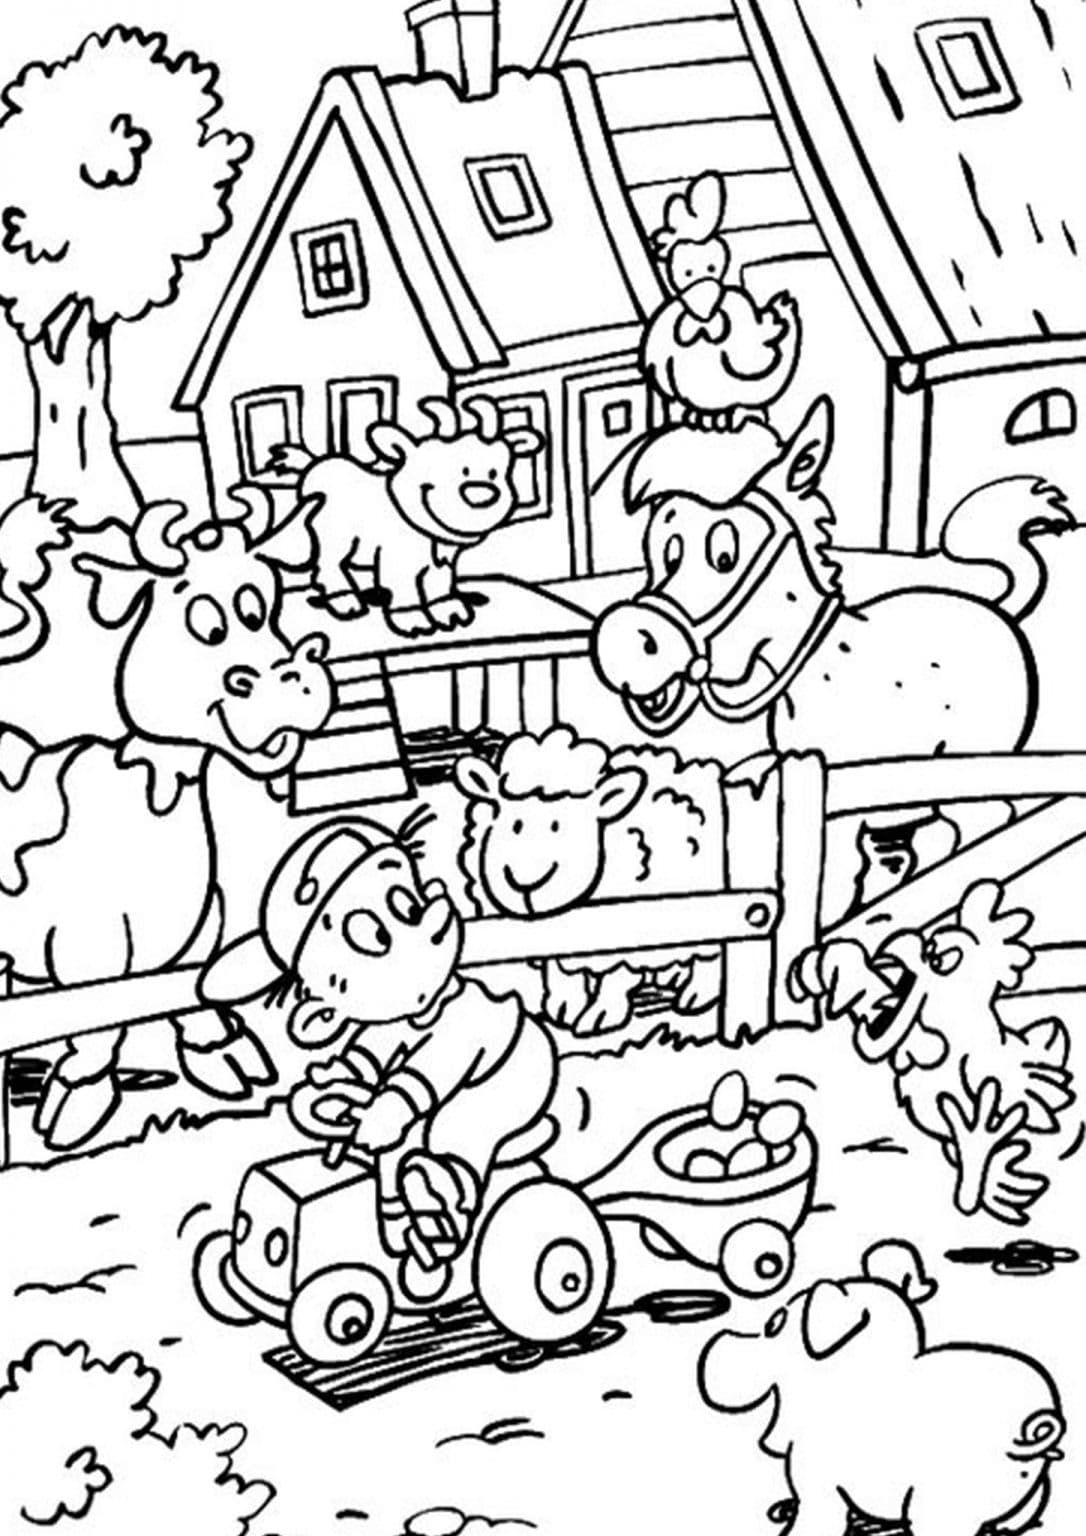 Free Easy To Print Farm Coloring Pages In 2021 Farm Coloring Pages Farm Animal Coloring Pages Coloring Pages